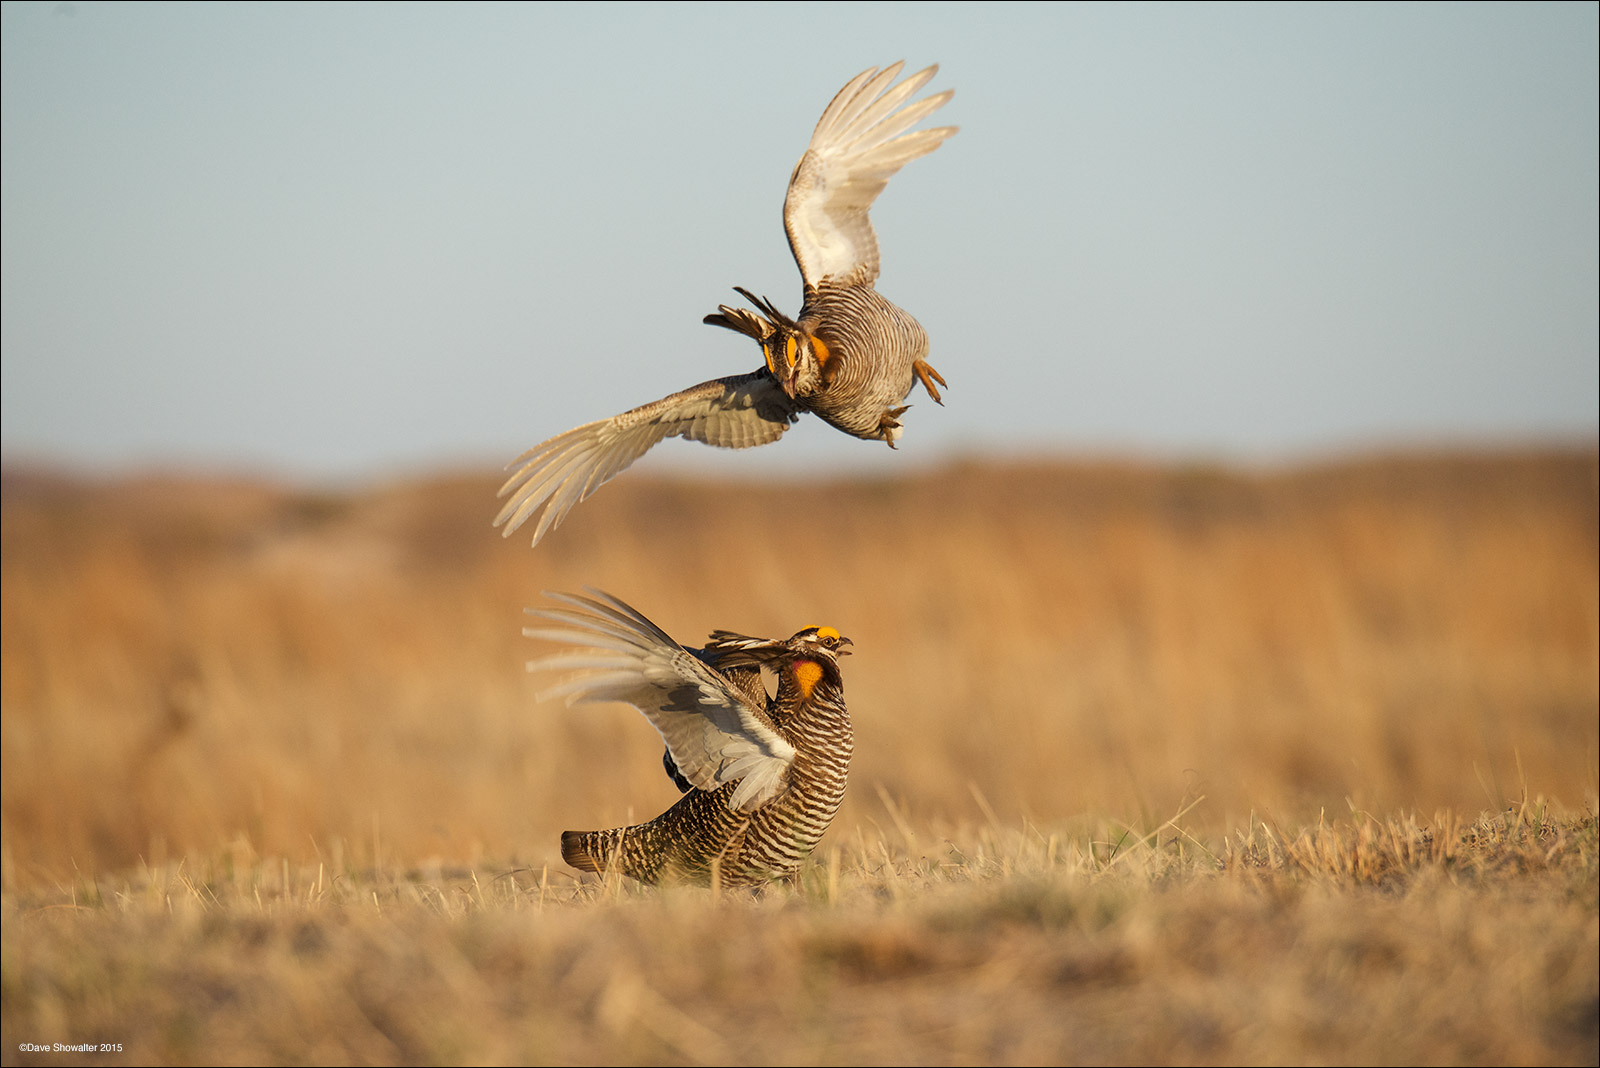 Greater prairie-chicken males fight on a lek in the Nebraska Sandhills. While photographing from a camouflaged blind, I marveled...